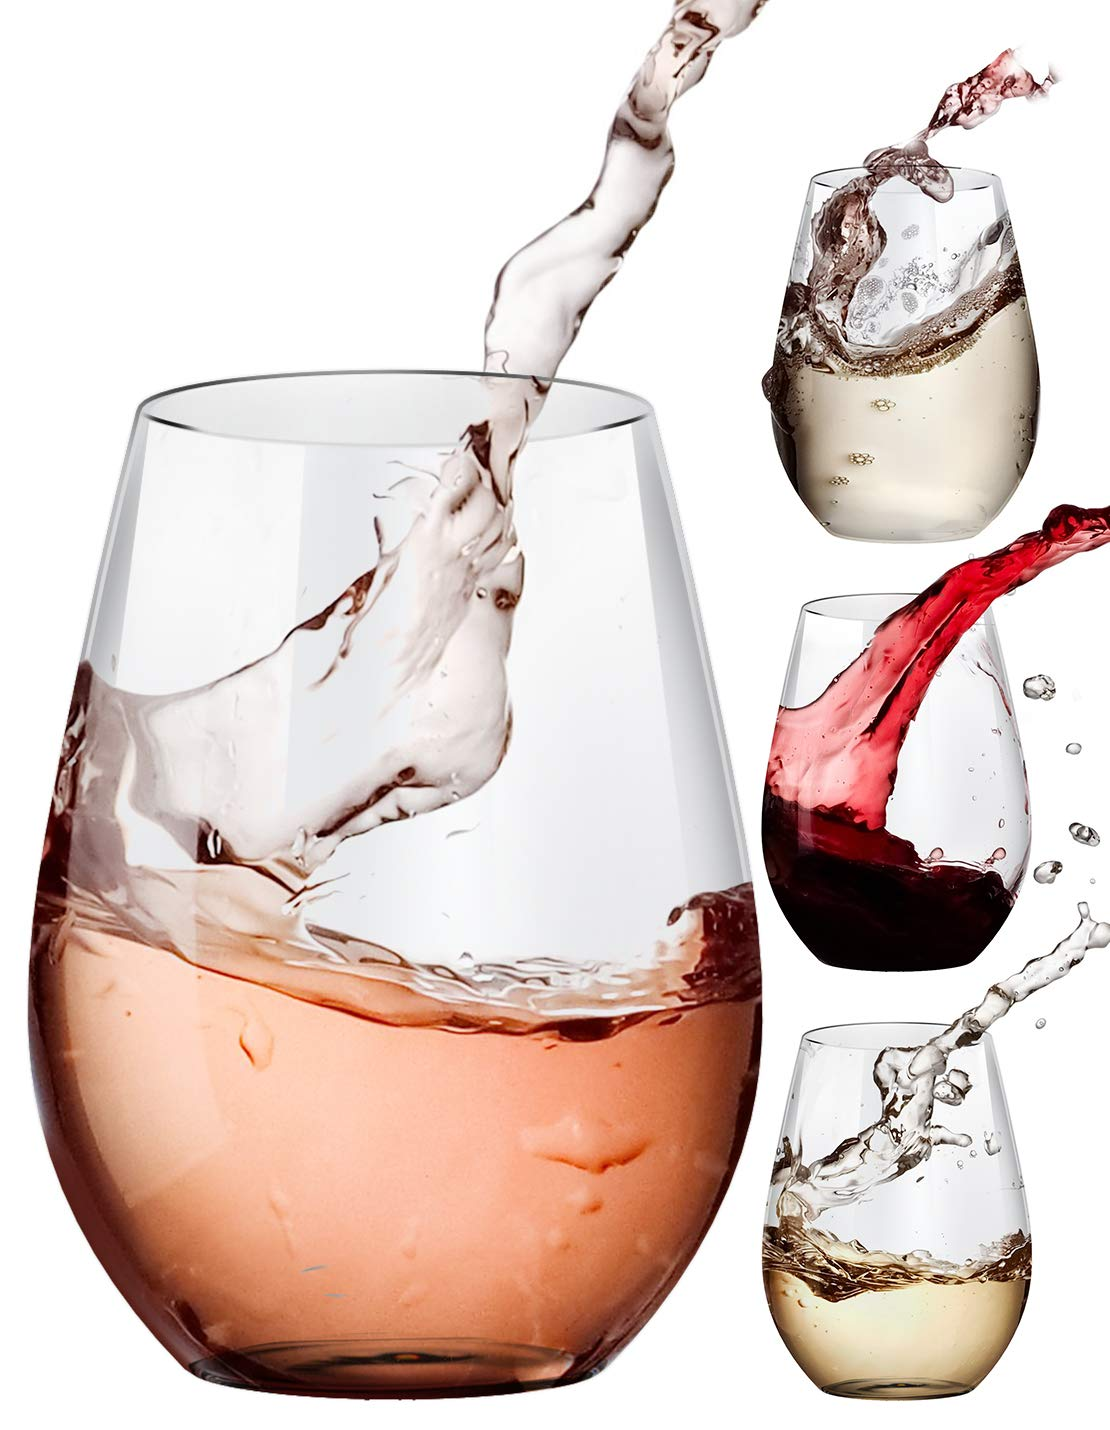 Stemless Wine Glasses, 20-oz Drinking Glasses, Set of 4, Ideal for Red and White Wine, Juice, Kitchen Glassware, Beach, Wedding and Party, Dishwasher-Safe by Amallino